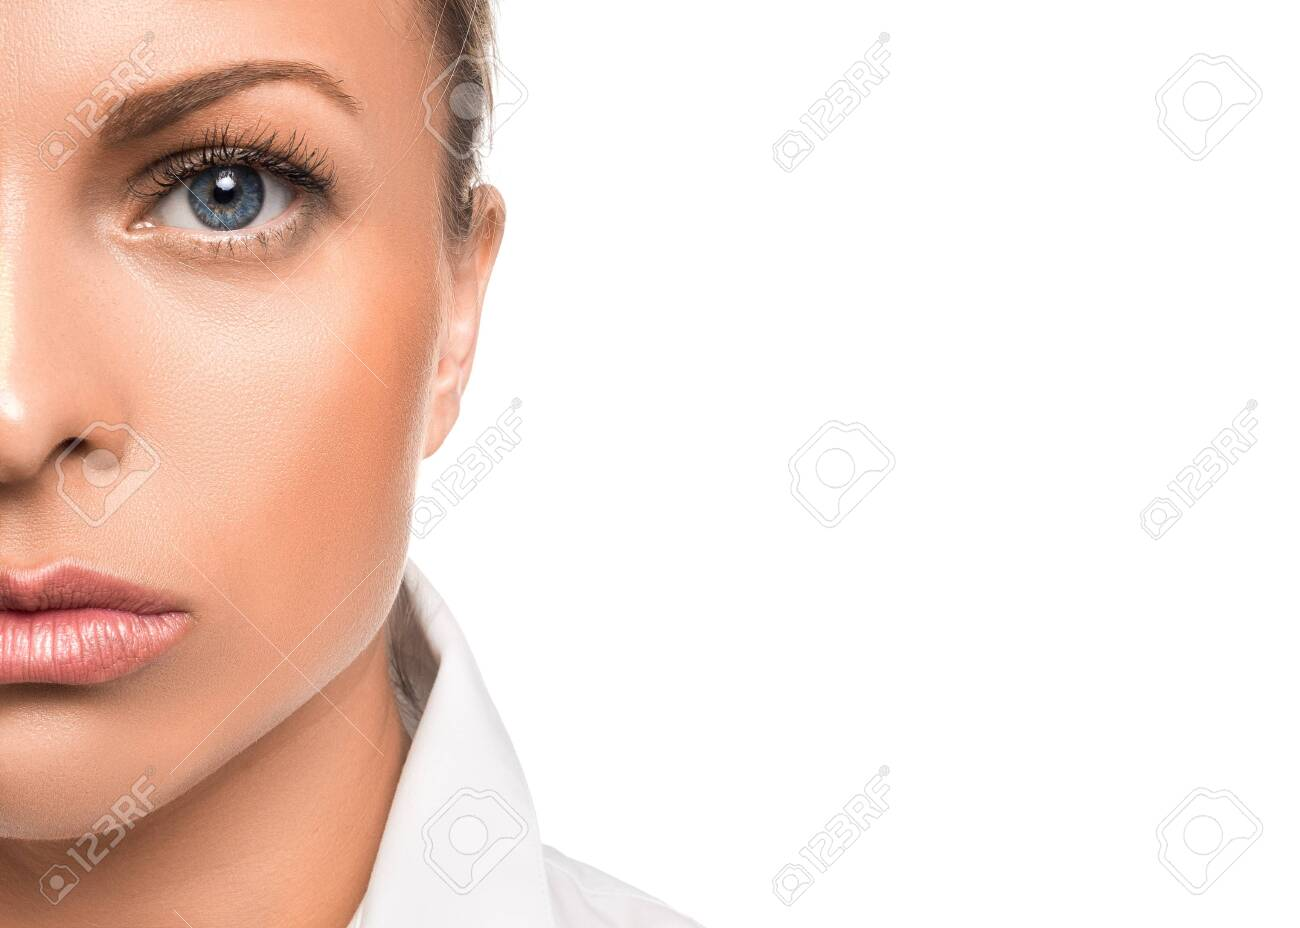 Close up portrait of a serious woman. Half of face and copy space. - 130111027